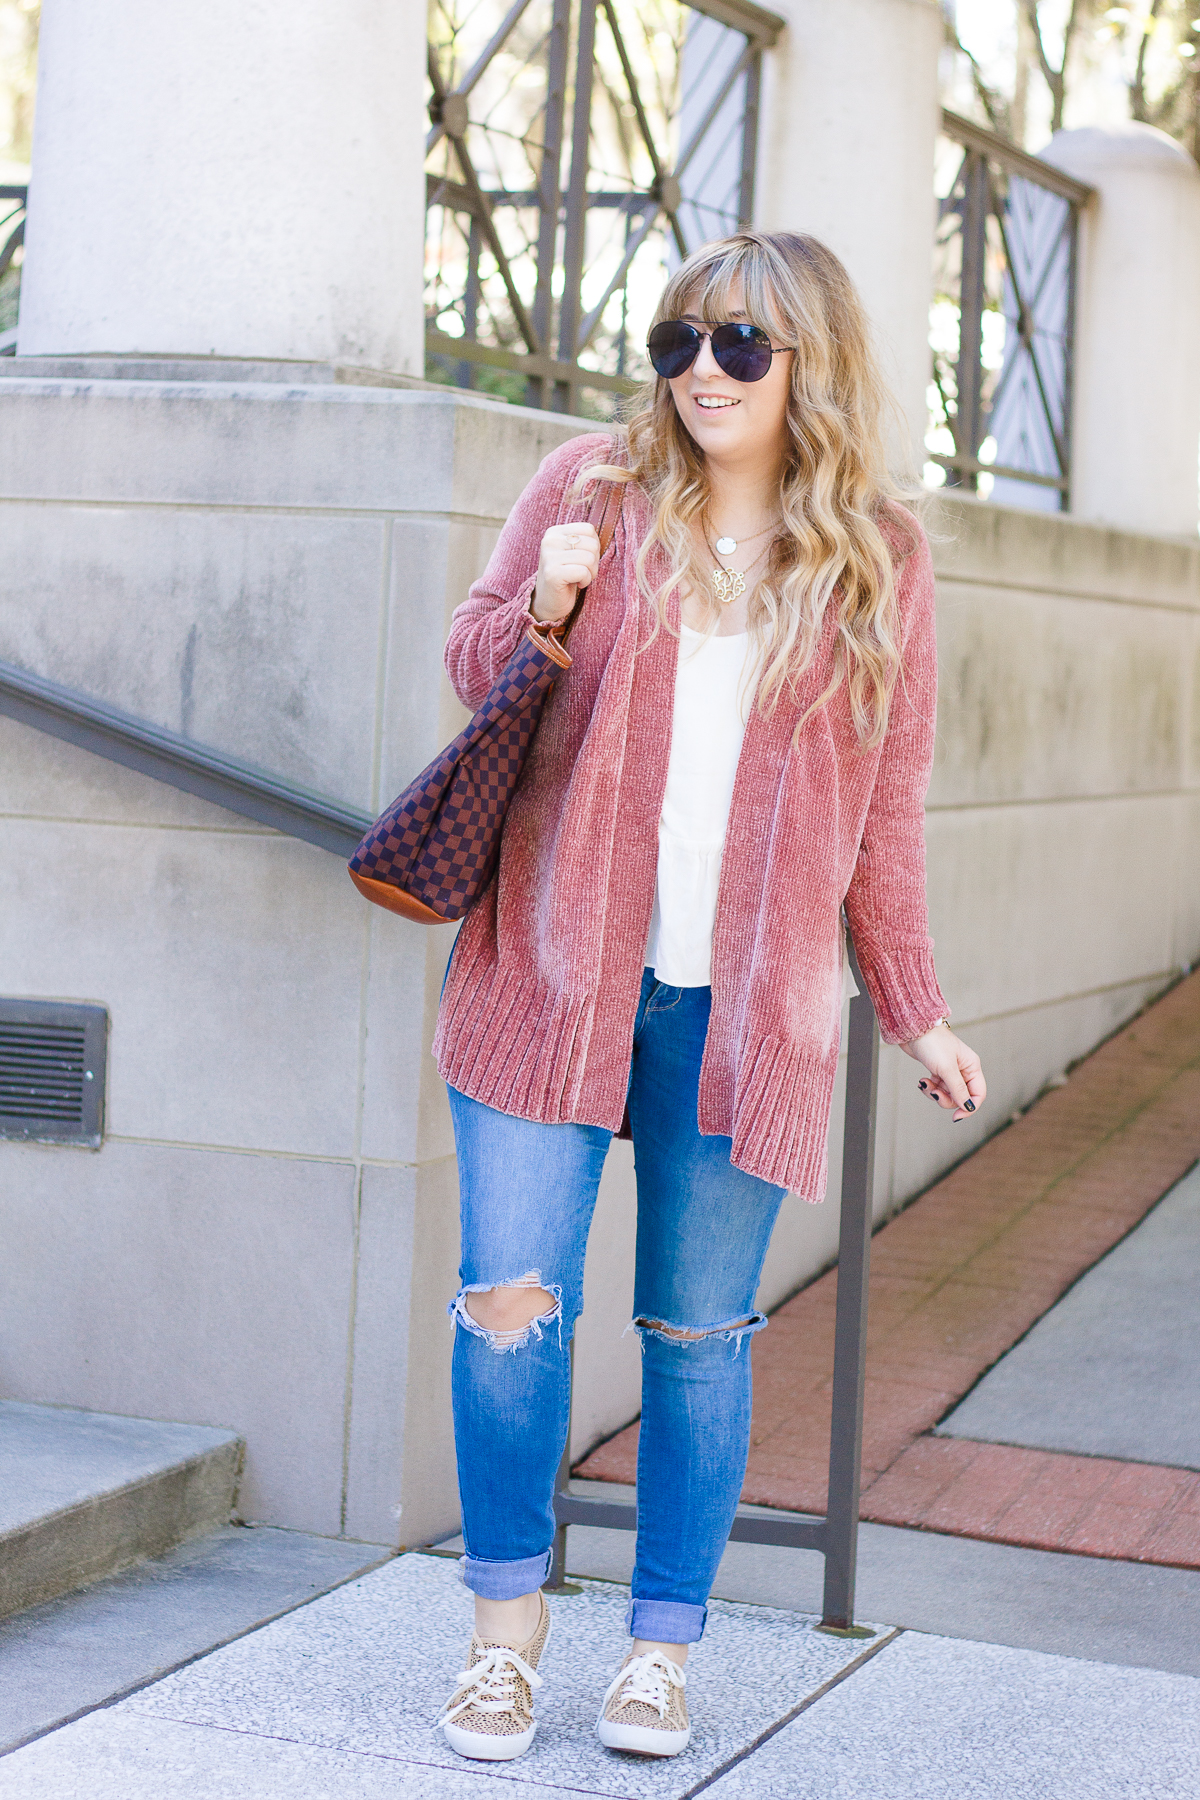 Casual chenille cardigan outfit idea for fall